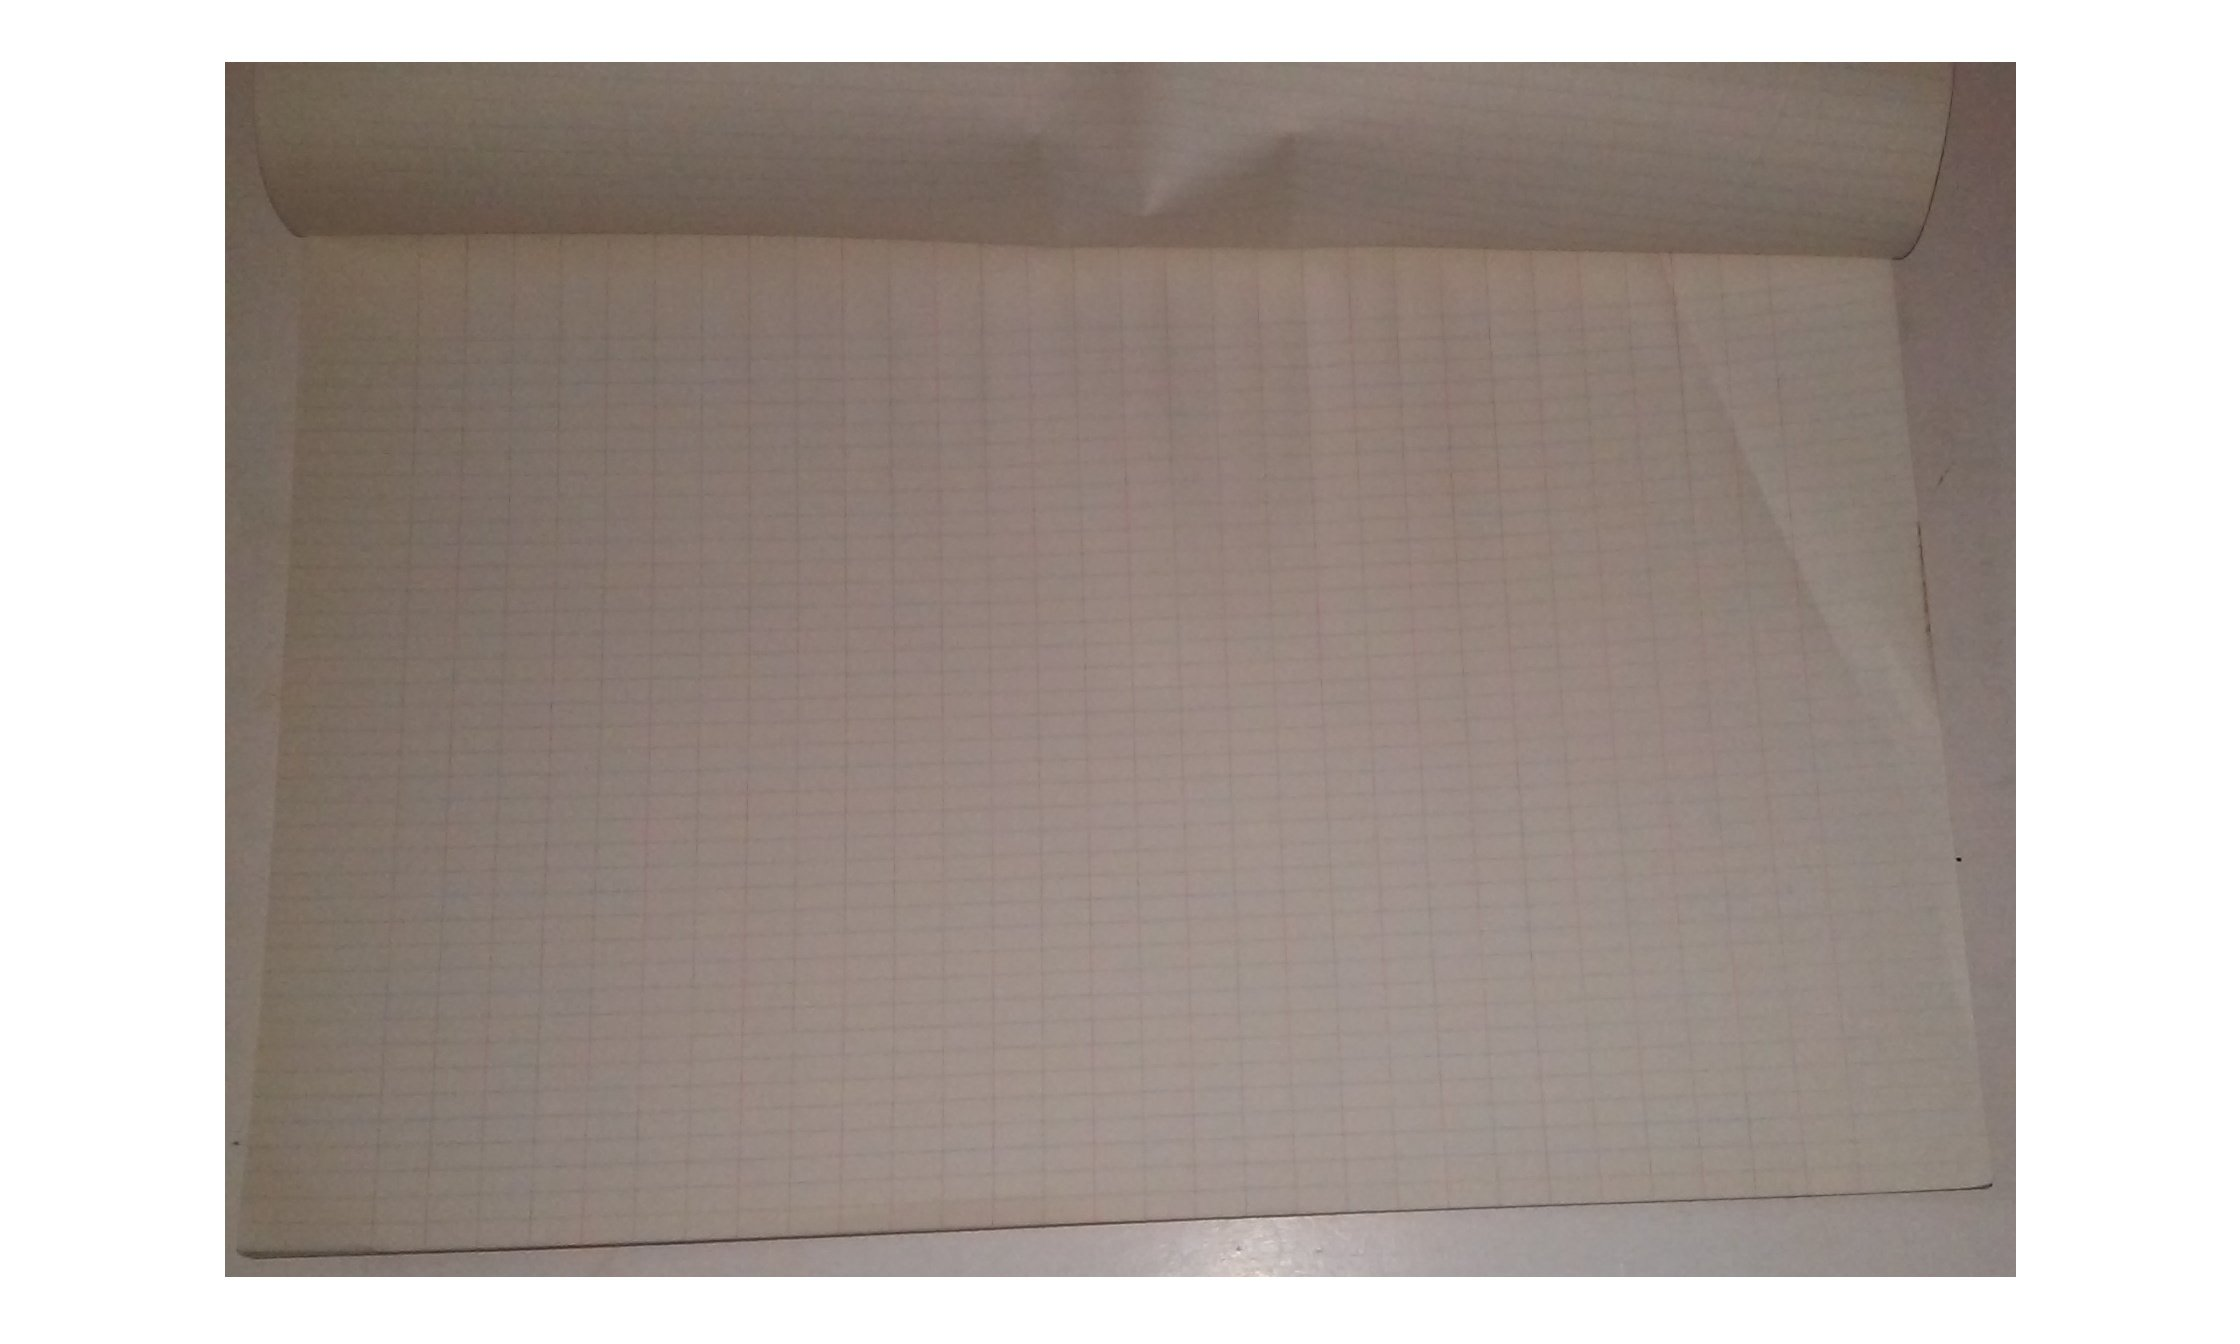 Ampad 1736 Efficency Line Columnar Pad 17'' x 11'' Ruled 50 Sheets 29 Columns With Name Space